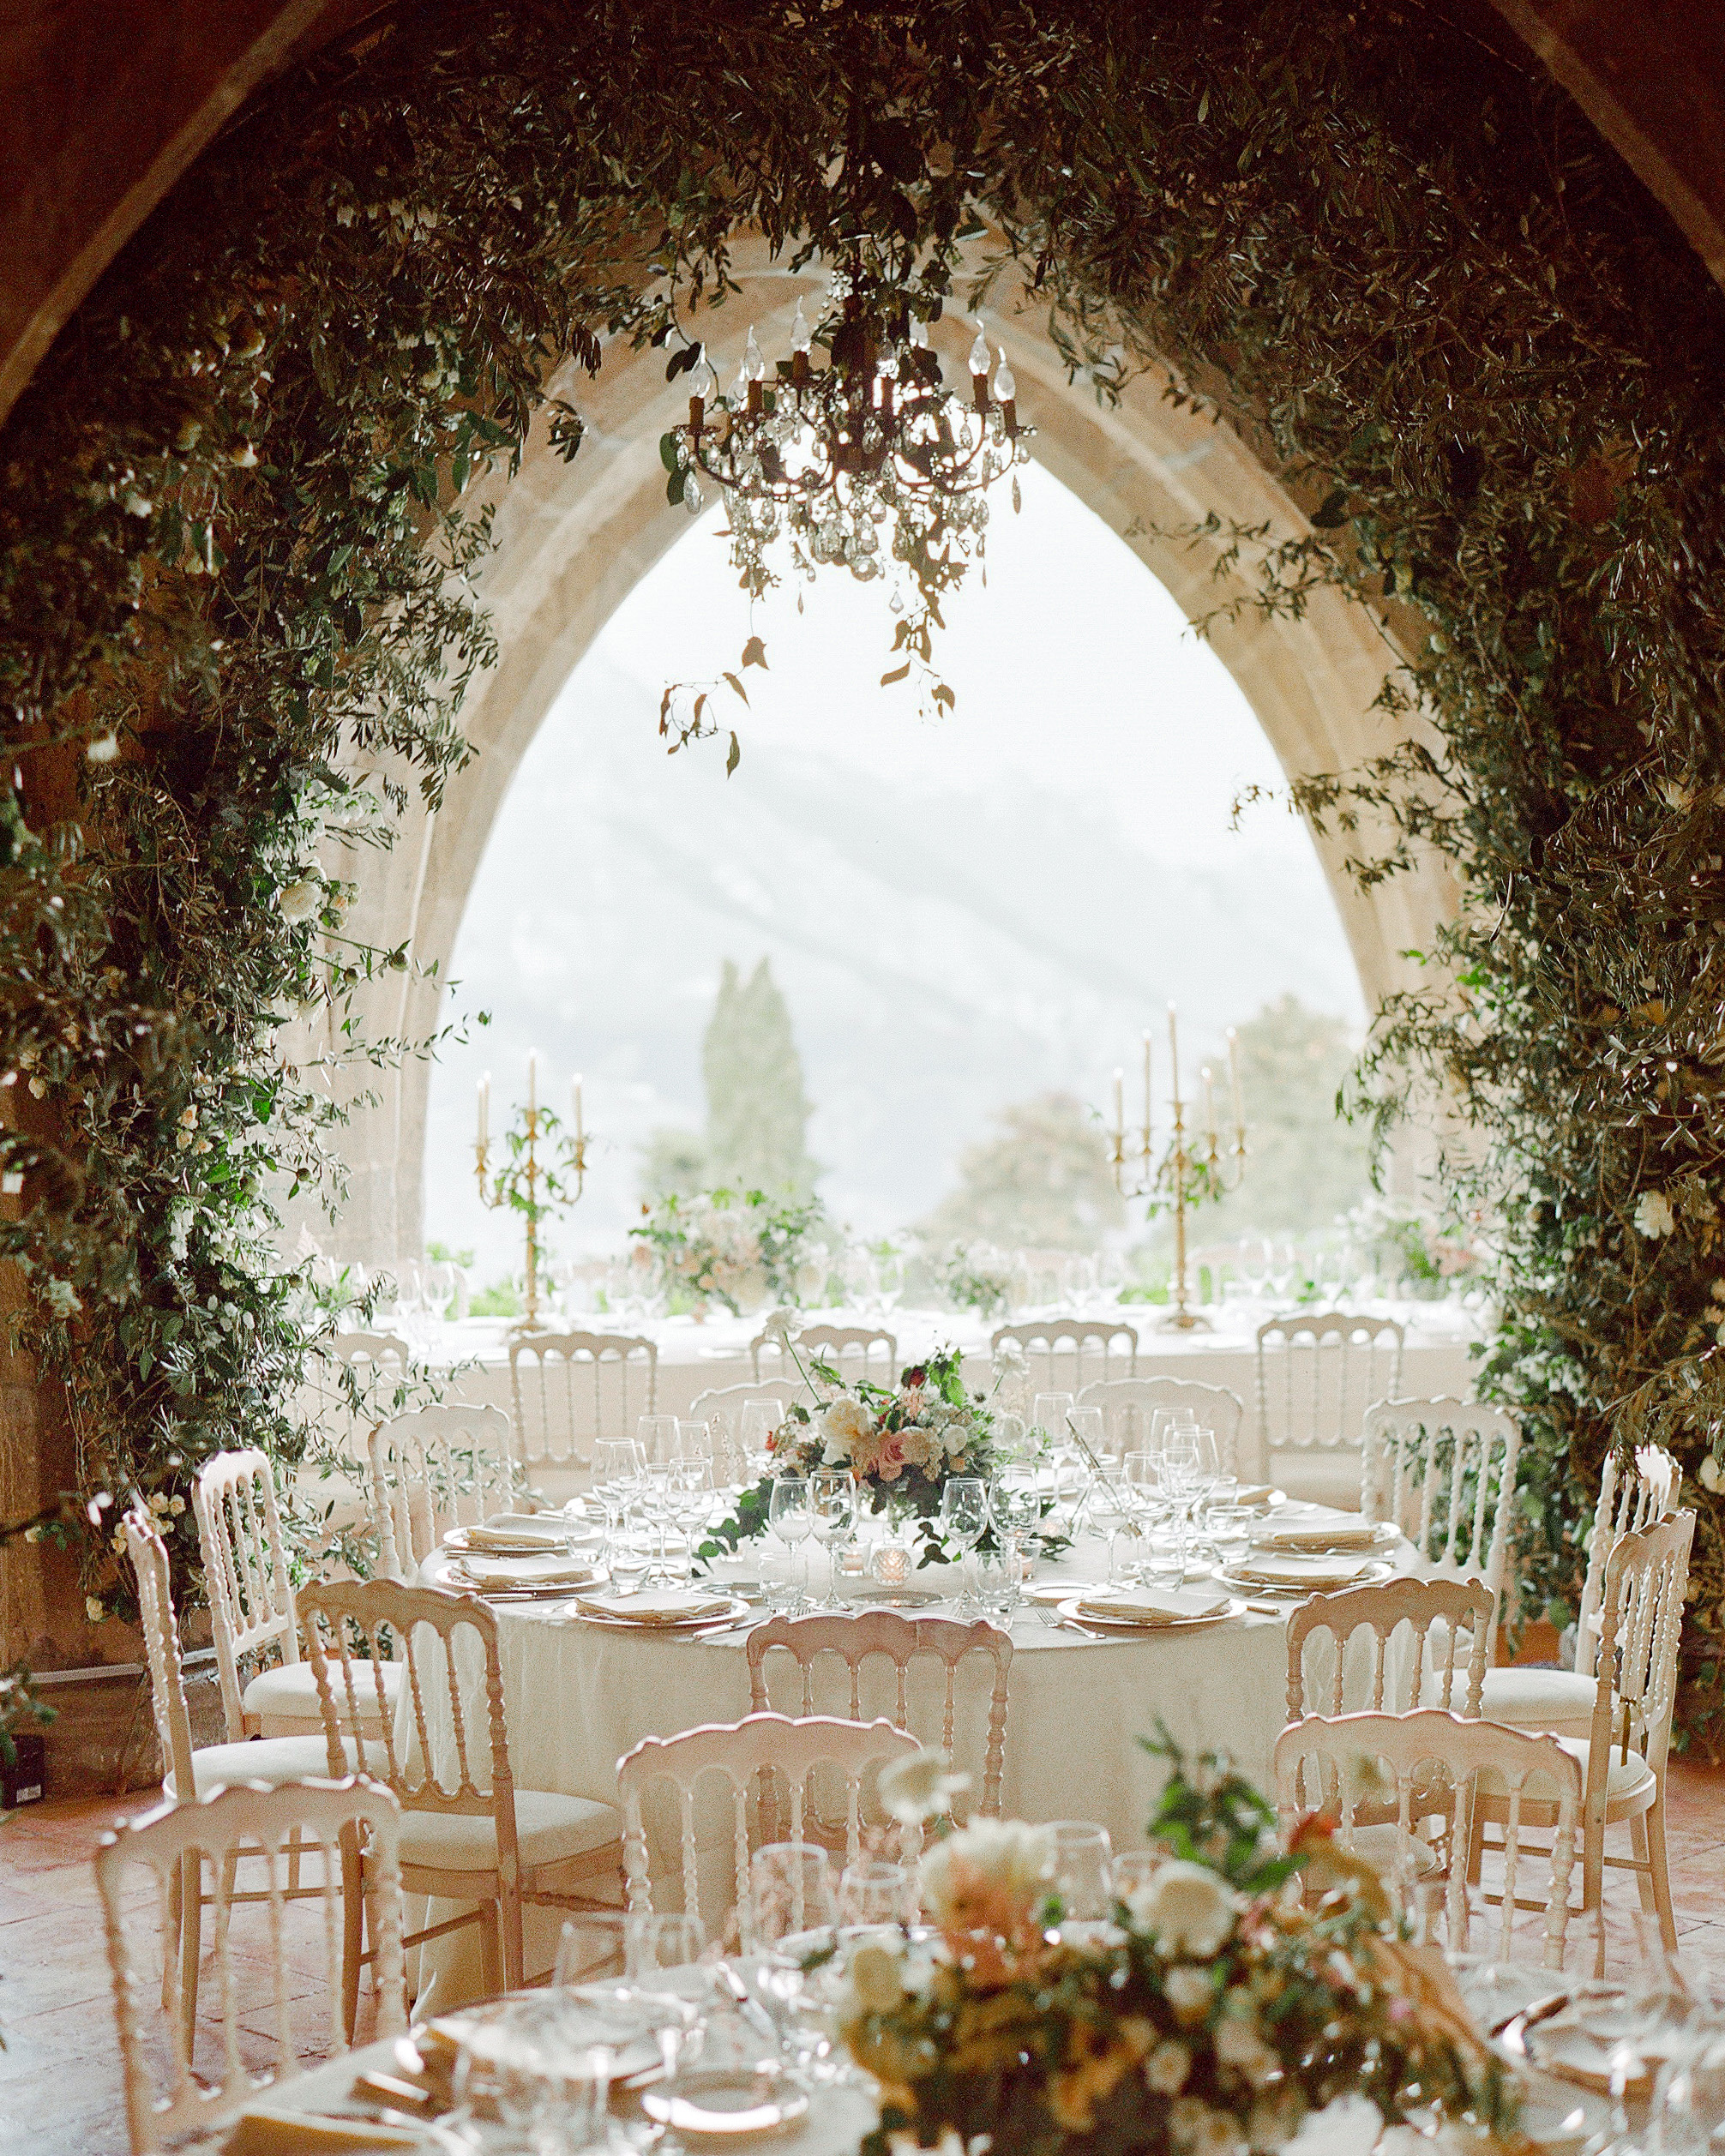 Should Your Wedding Venue Influence Your Event's Formality?